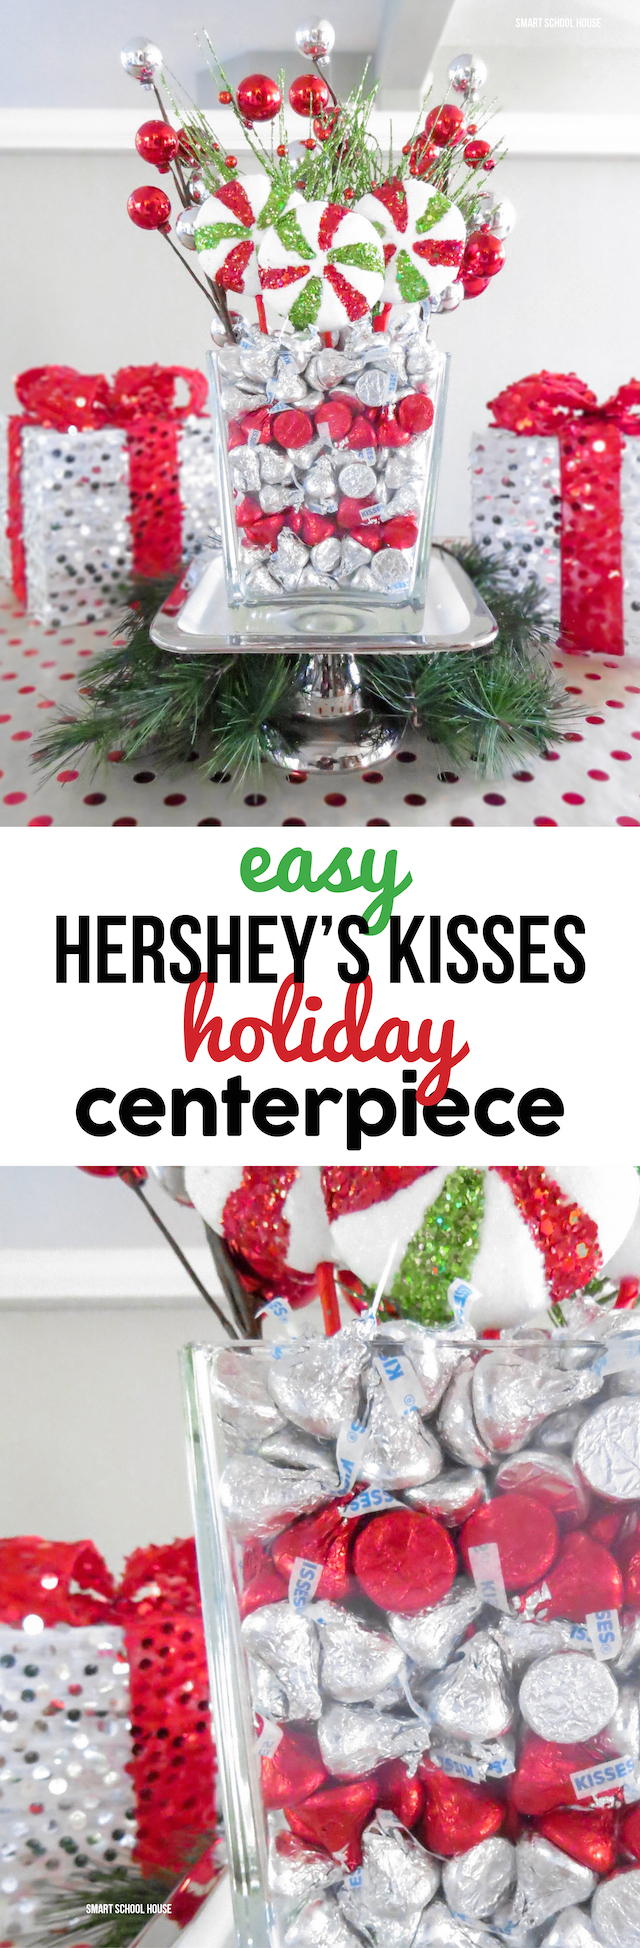 DIY Hershey's Kisses Holiday Centerpiece